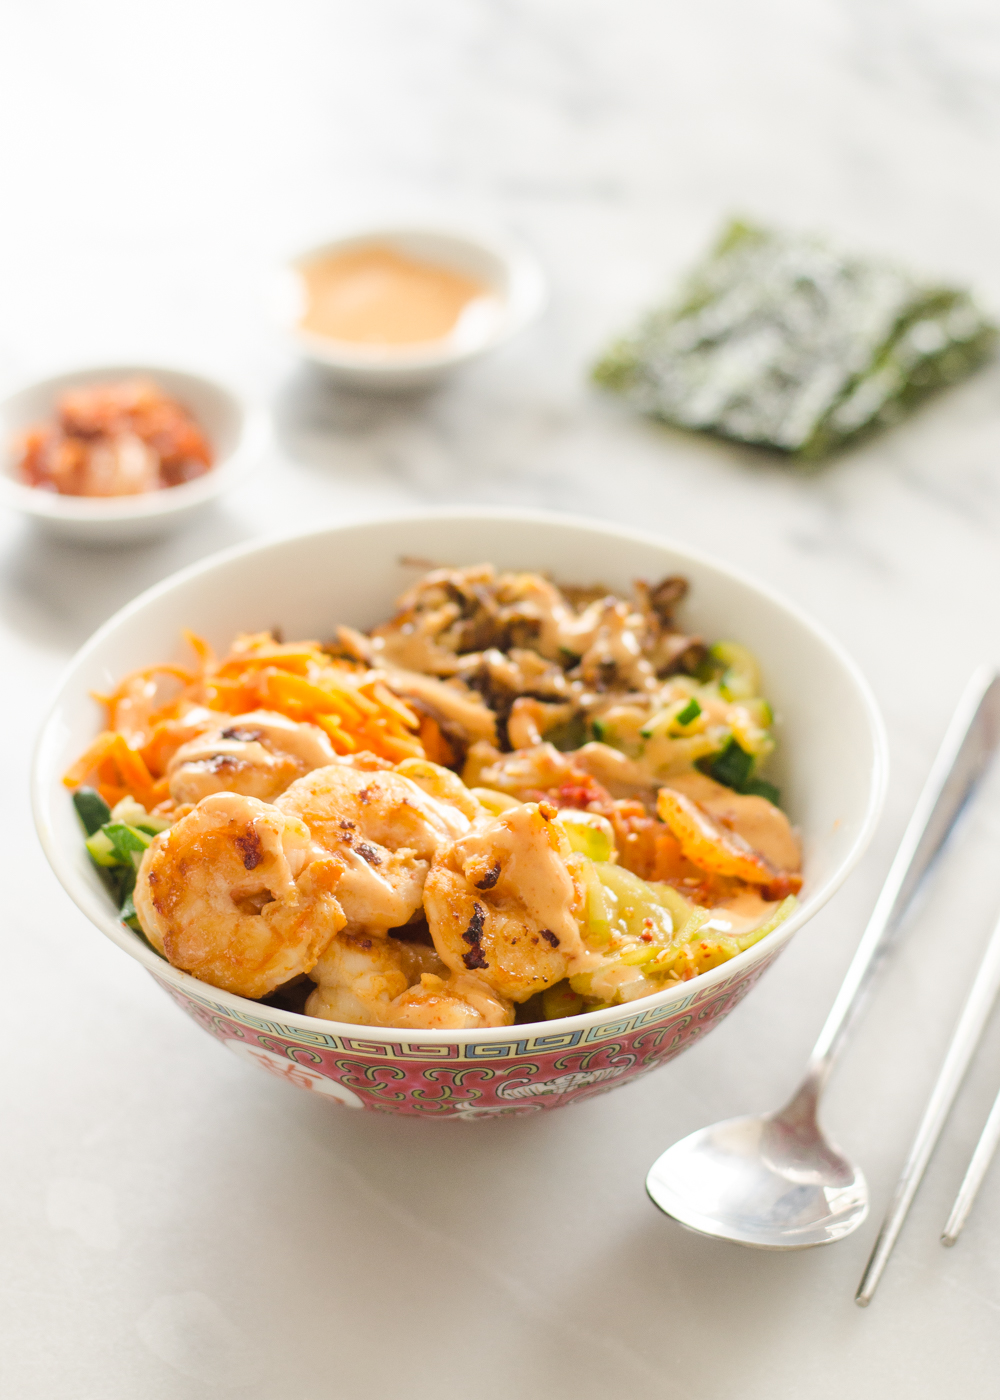 Spicy Korean Shrimp Rice Bowl Recipe